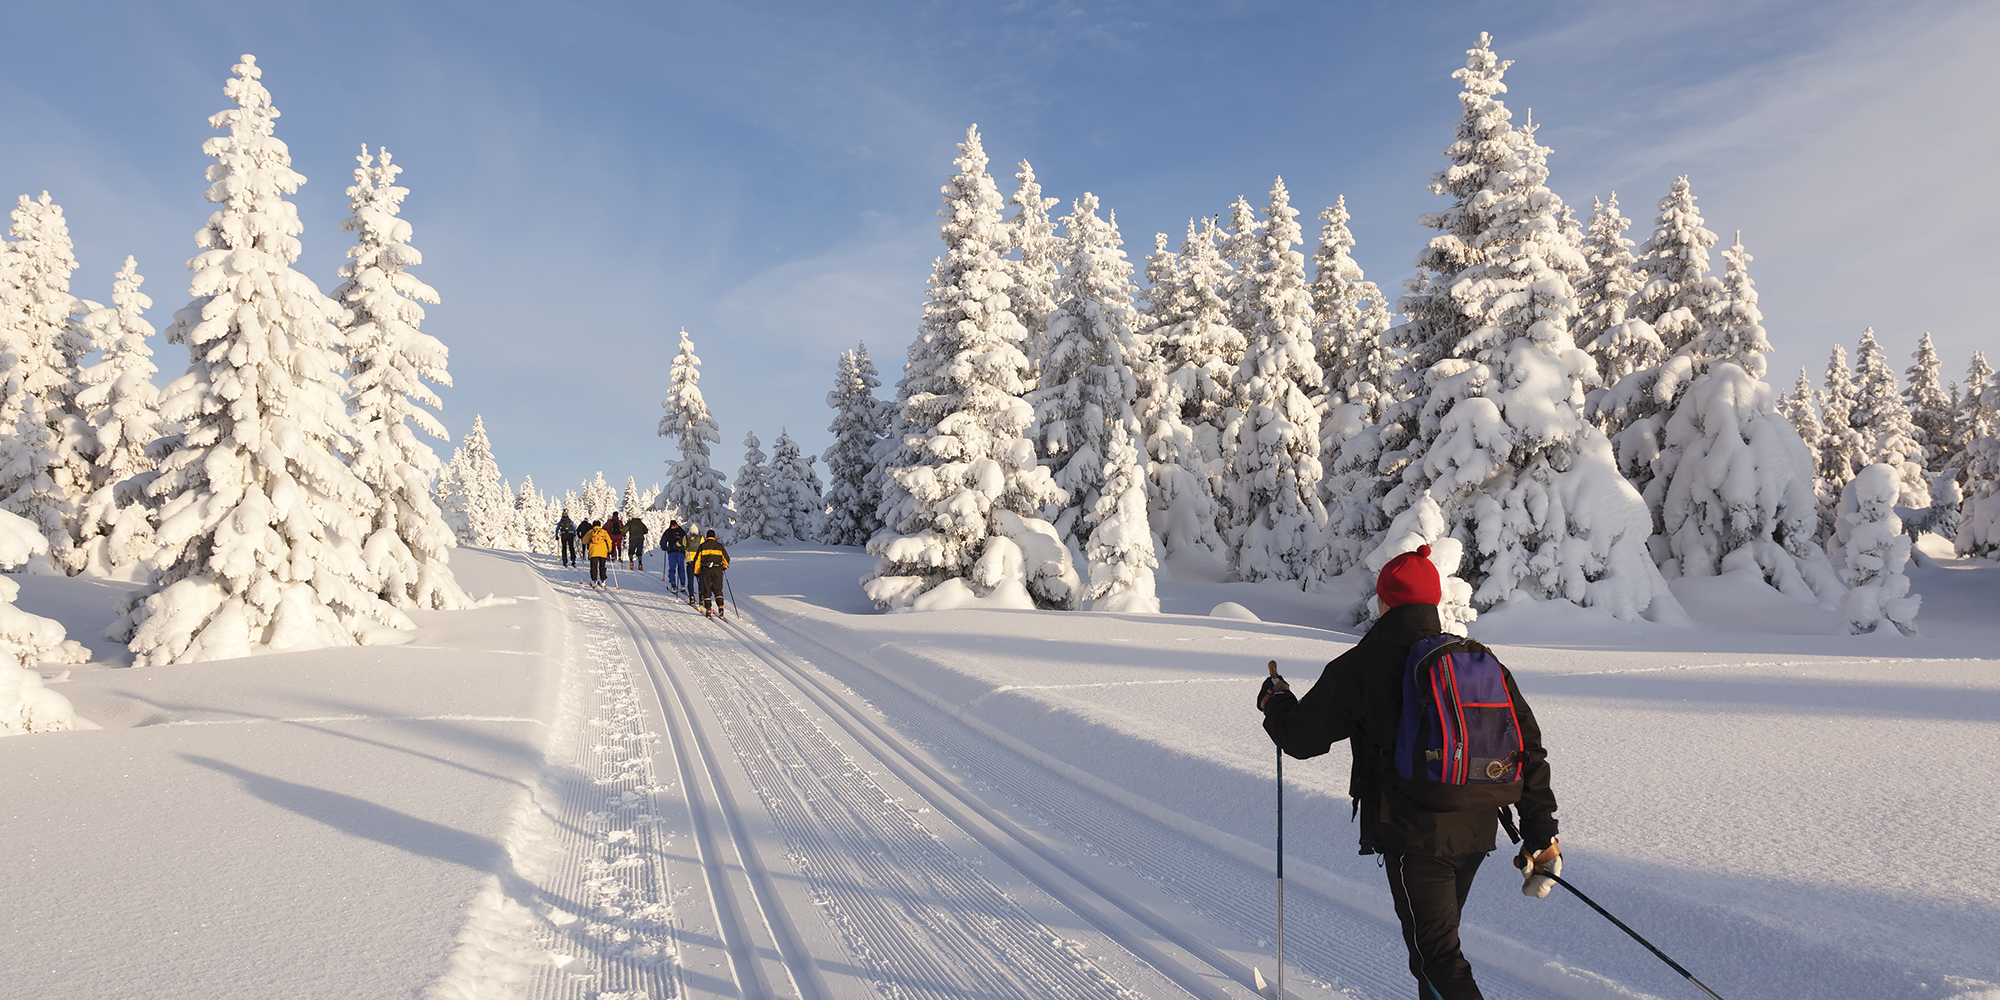 Skiing Trip To France